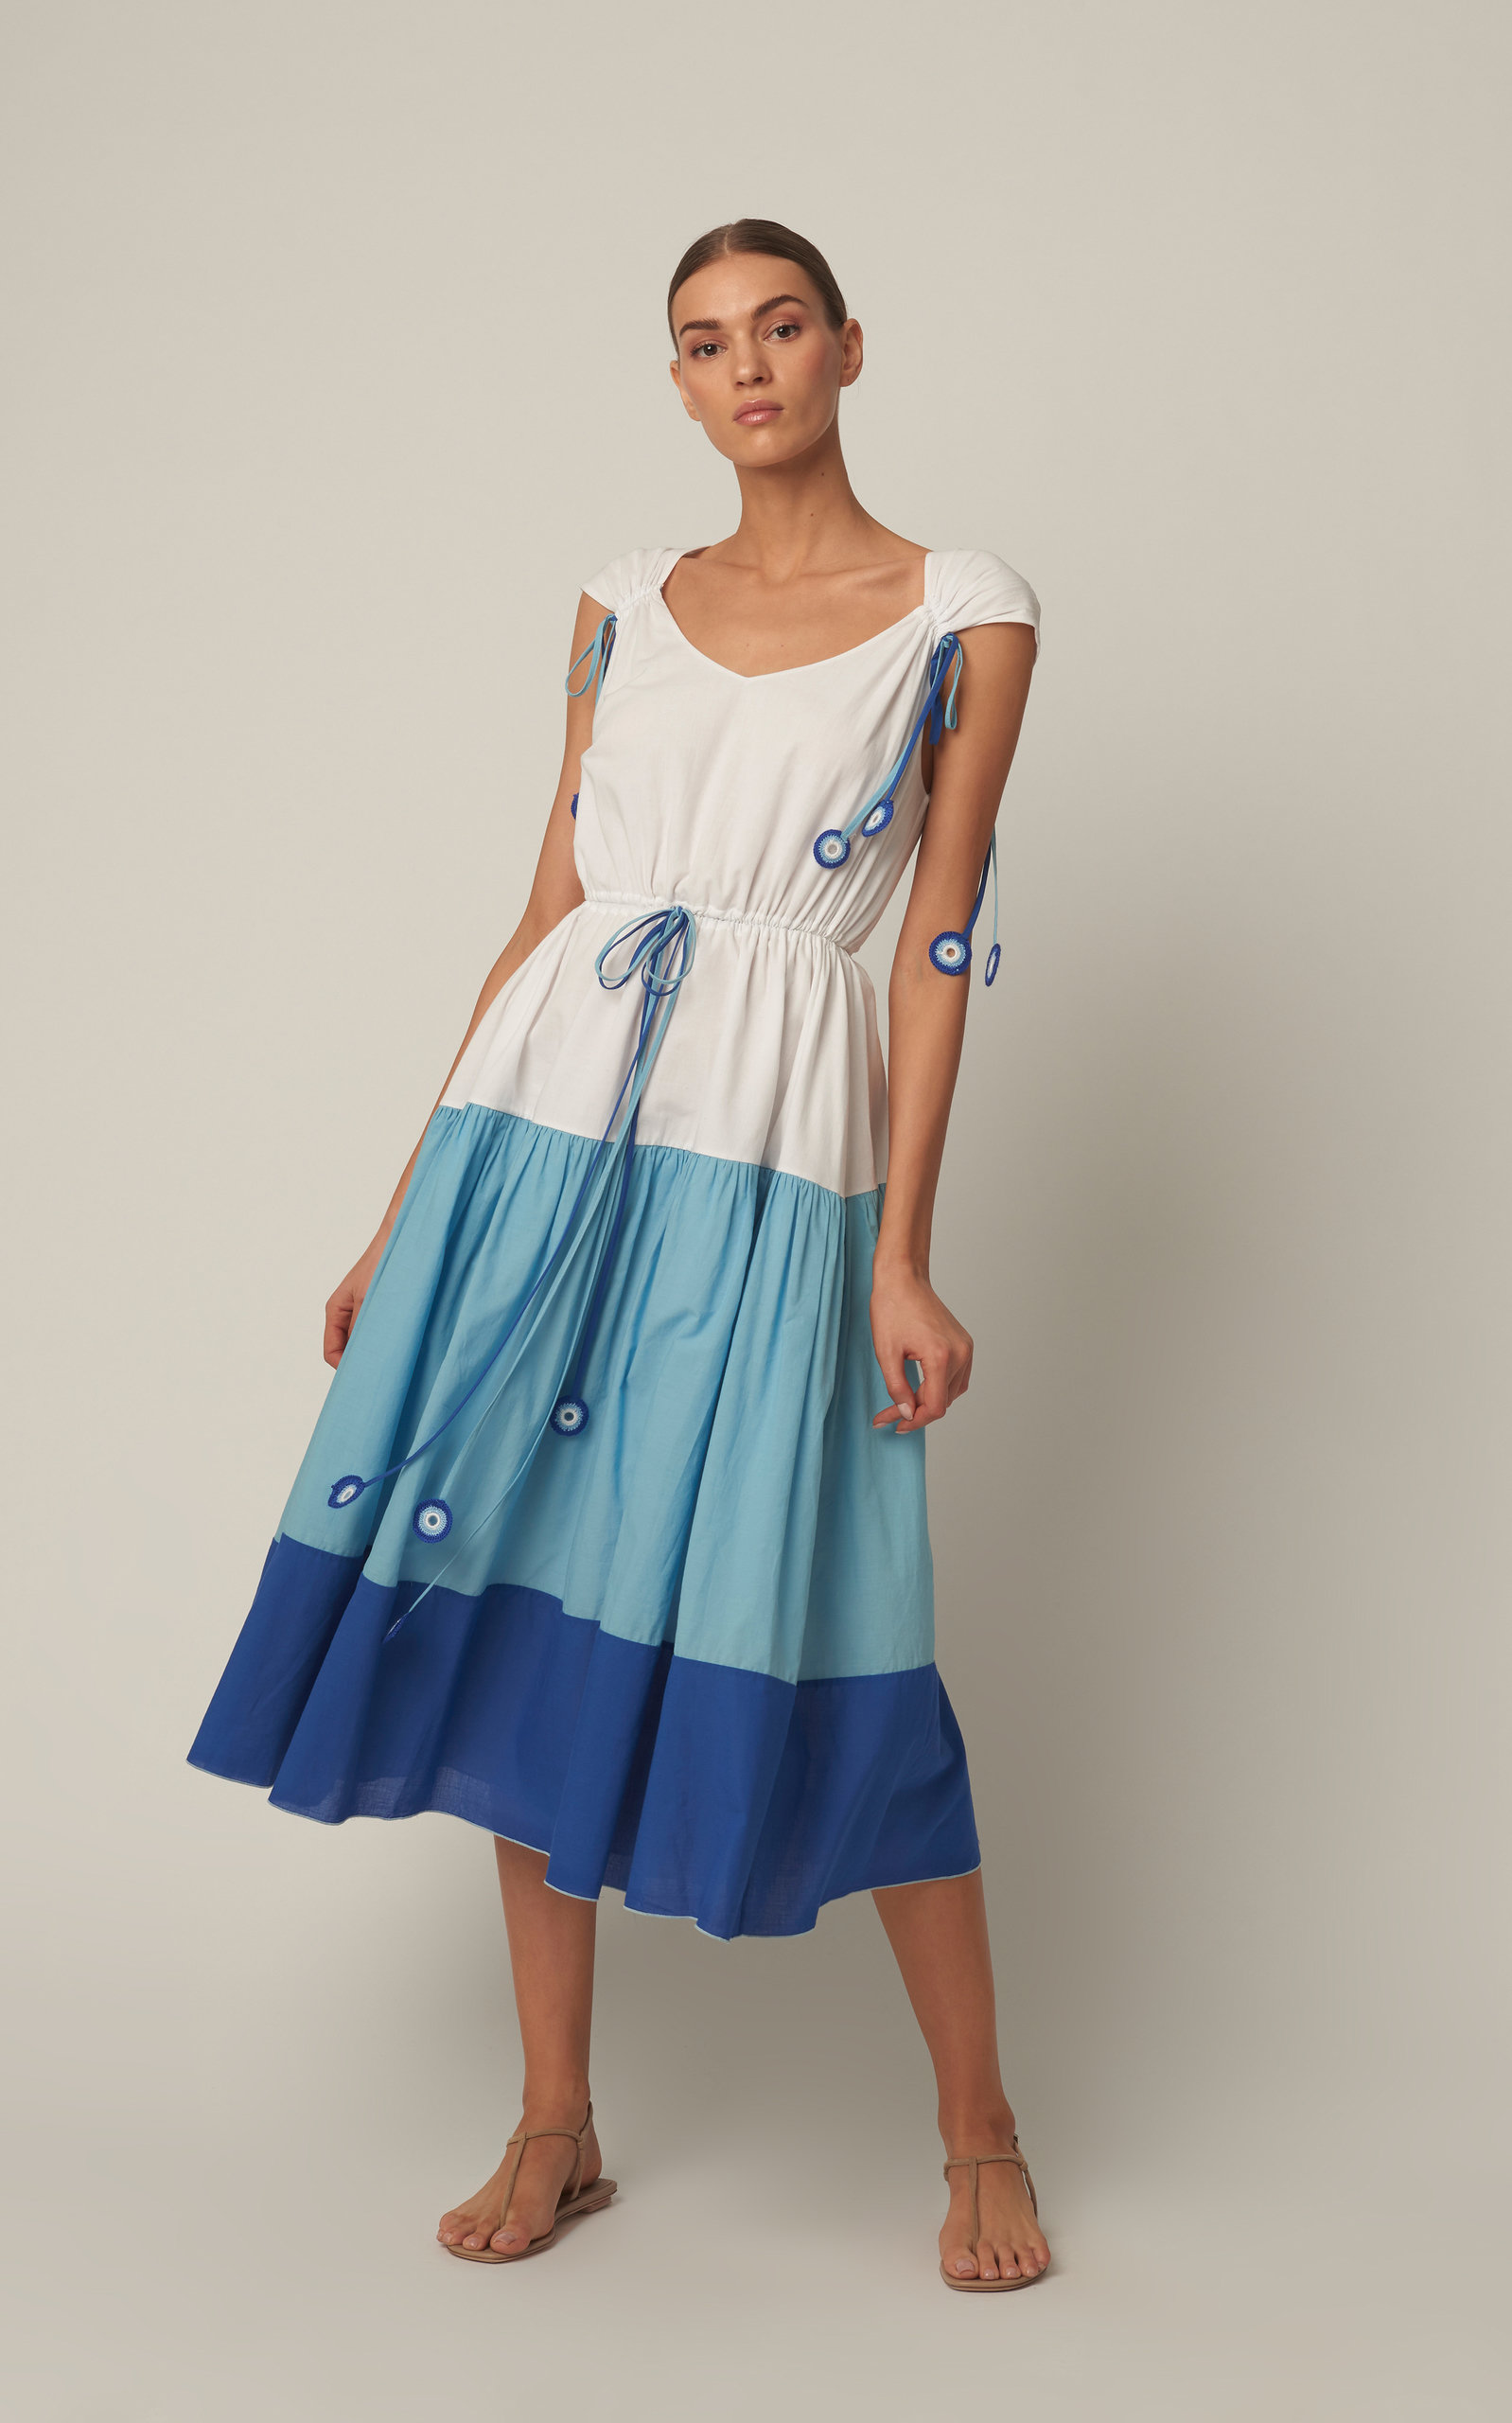 large_my-beachy-side-multi-color-block-cotton-midi-dress.jpg